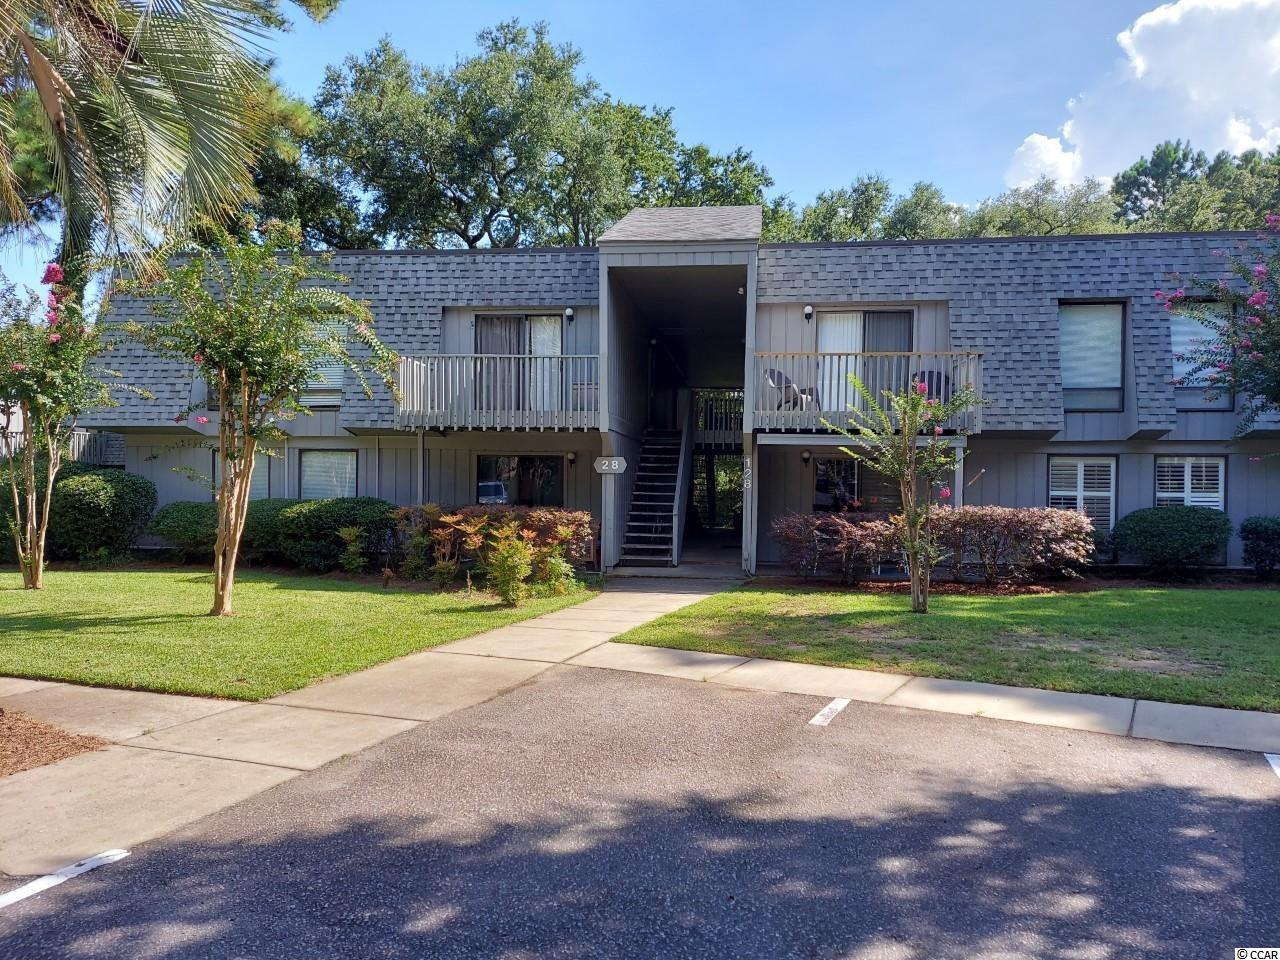 This 2nd floor unit! 2 Bedrooms, 1.5 Baths. Selling furnished! Living area has glass door to the sundeck. Jack & Jill bath, with tub/shower combination. Salt Marsh Cove is conveniently located at Litchfield, 5 minutes to the beach and close to restaurants, shopping, grocery stores, golf courses. Community pool, creek dock, boat parking.